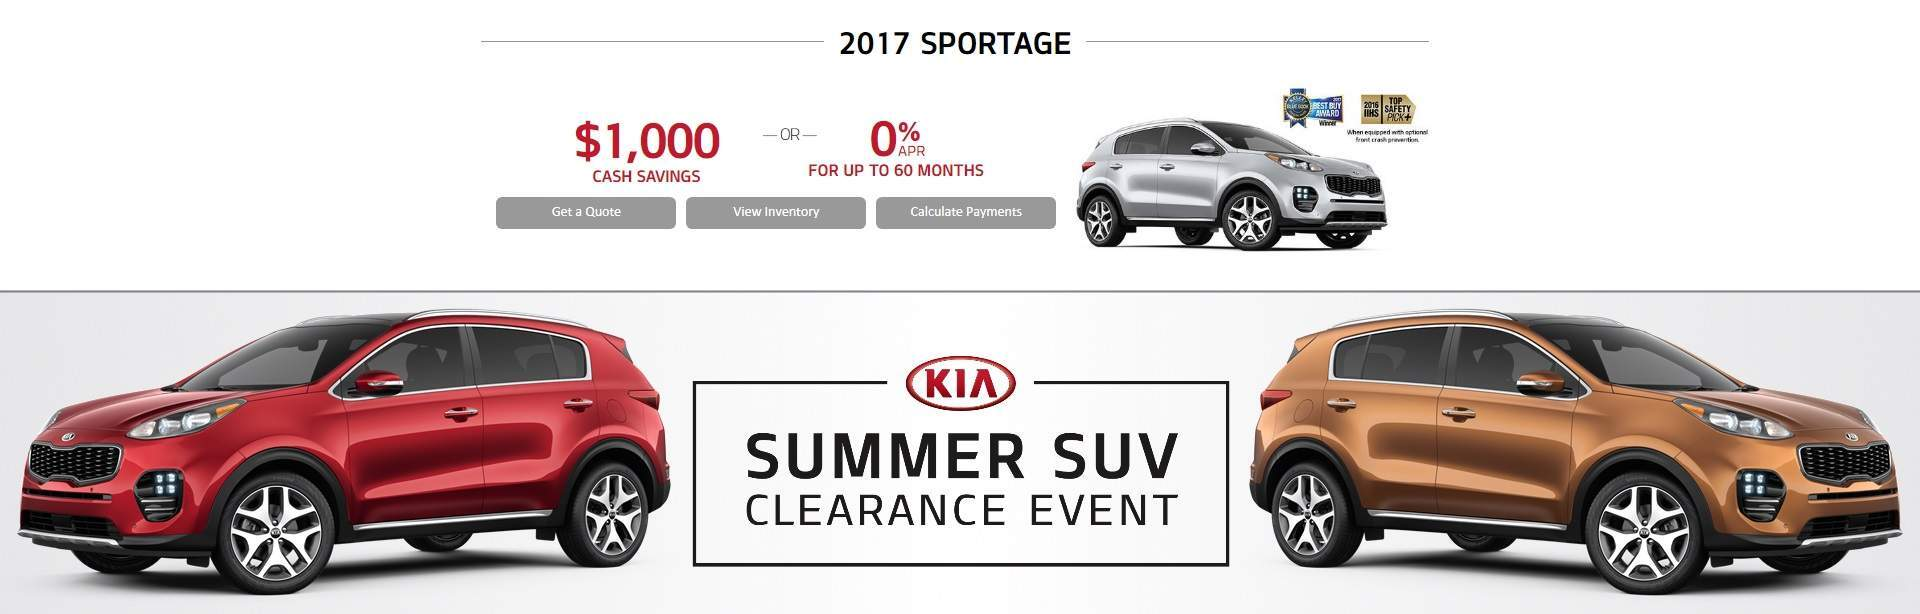 Summer SUV Clearance Event: SPORTAGE